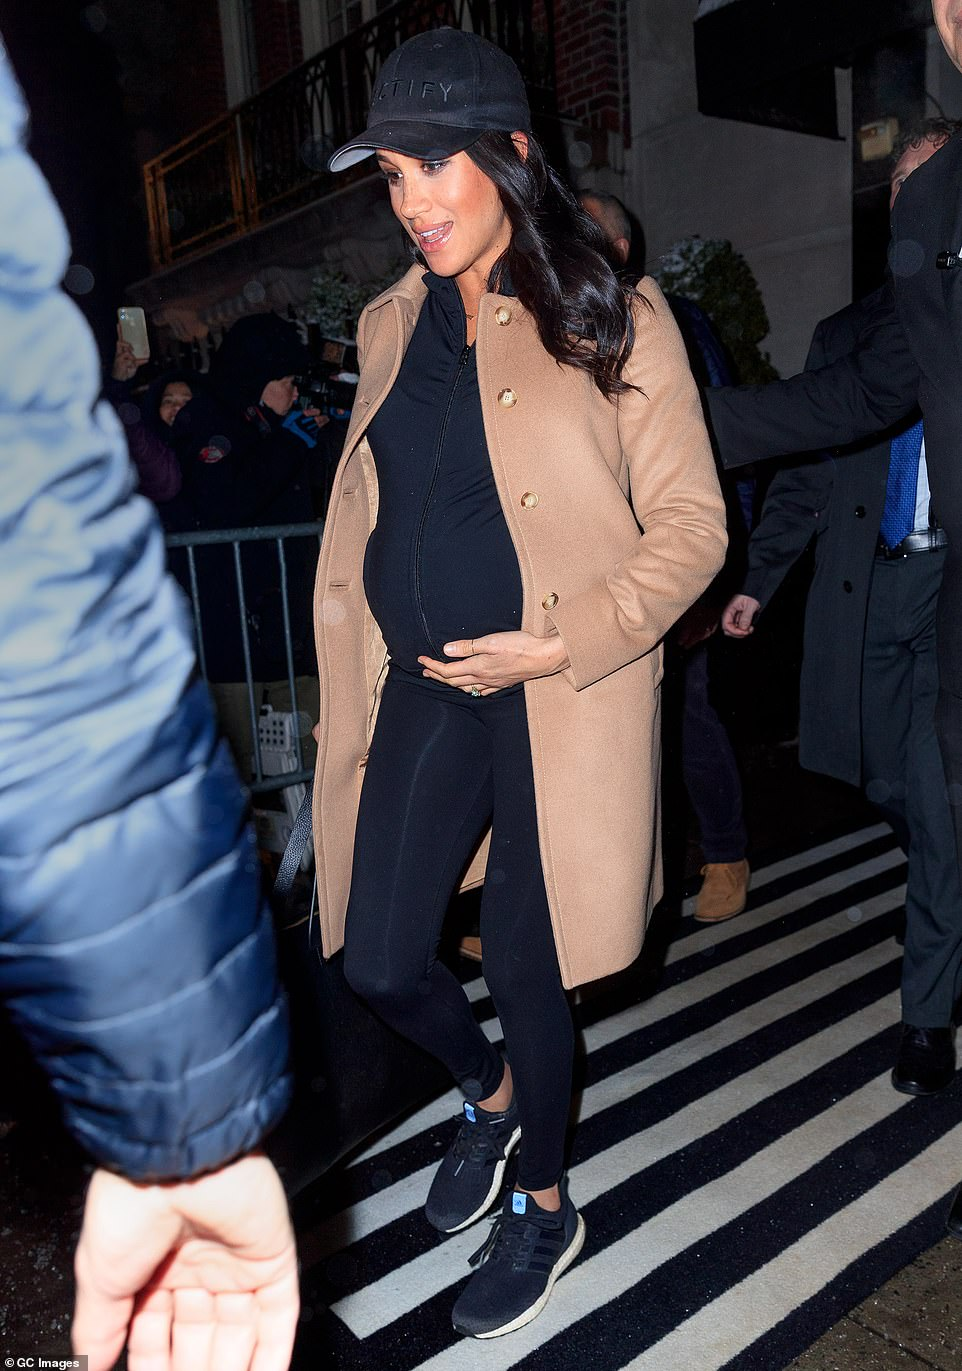 Getting closer! Meghan's large baby bump was clearly visible in the tight top as she left the hotel, having worn baggier outfit options for the much of her $500,000 trip to New York